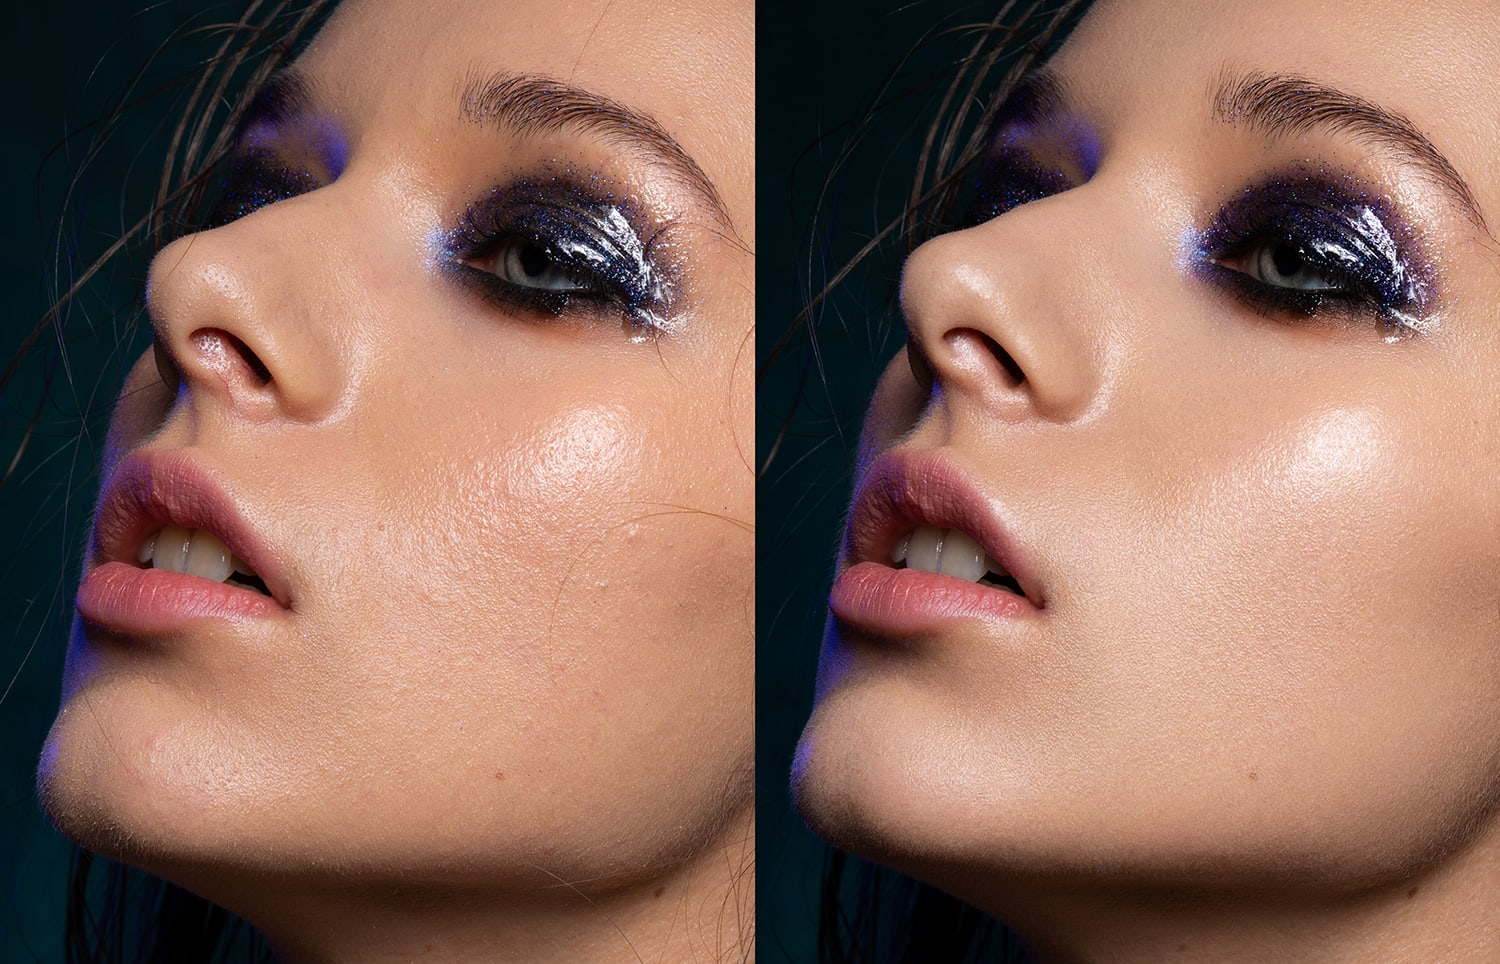 I will do professional photo retouch